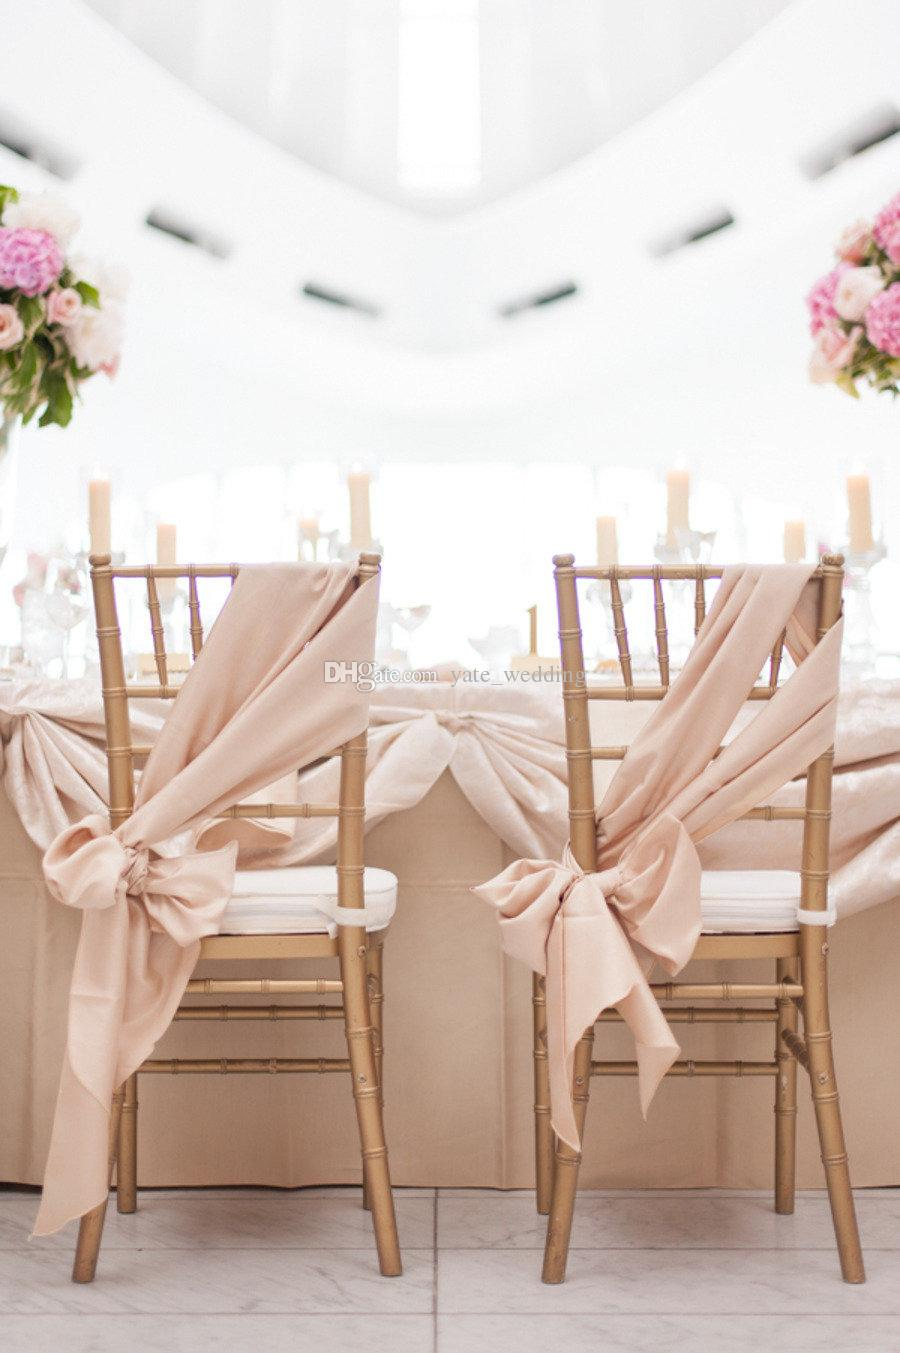 Folding chair covers wholesale under 1 - Cheap Champagne Chair Covers Discount Universal Satin Chair Covers